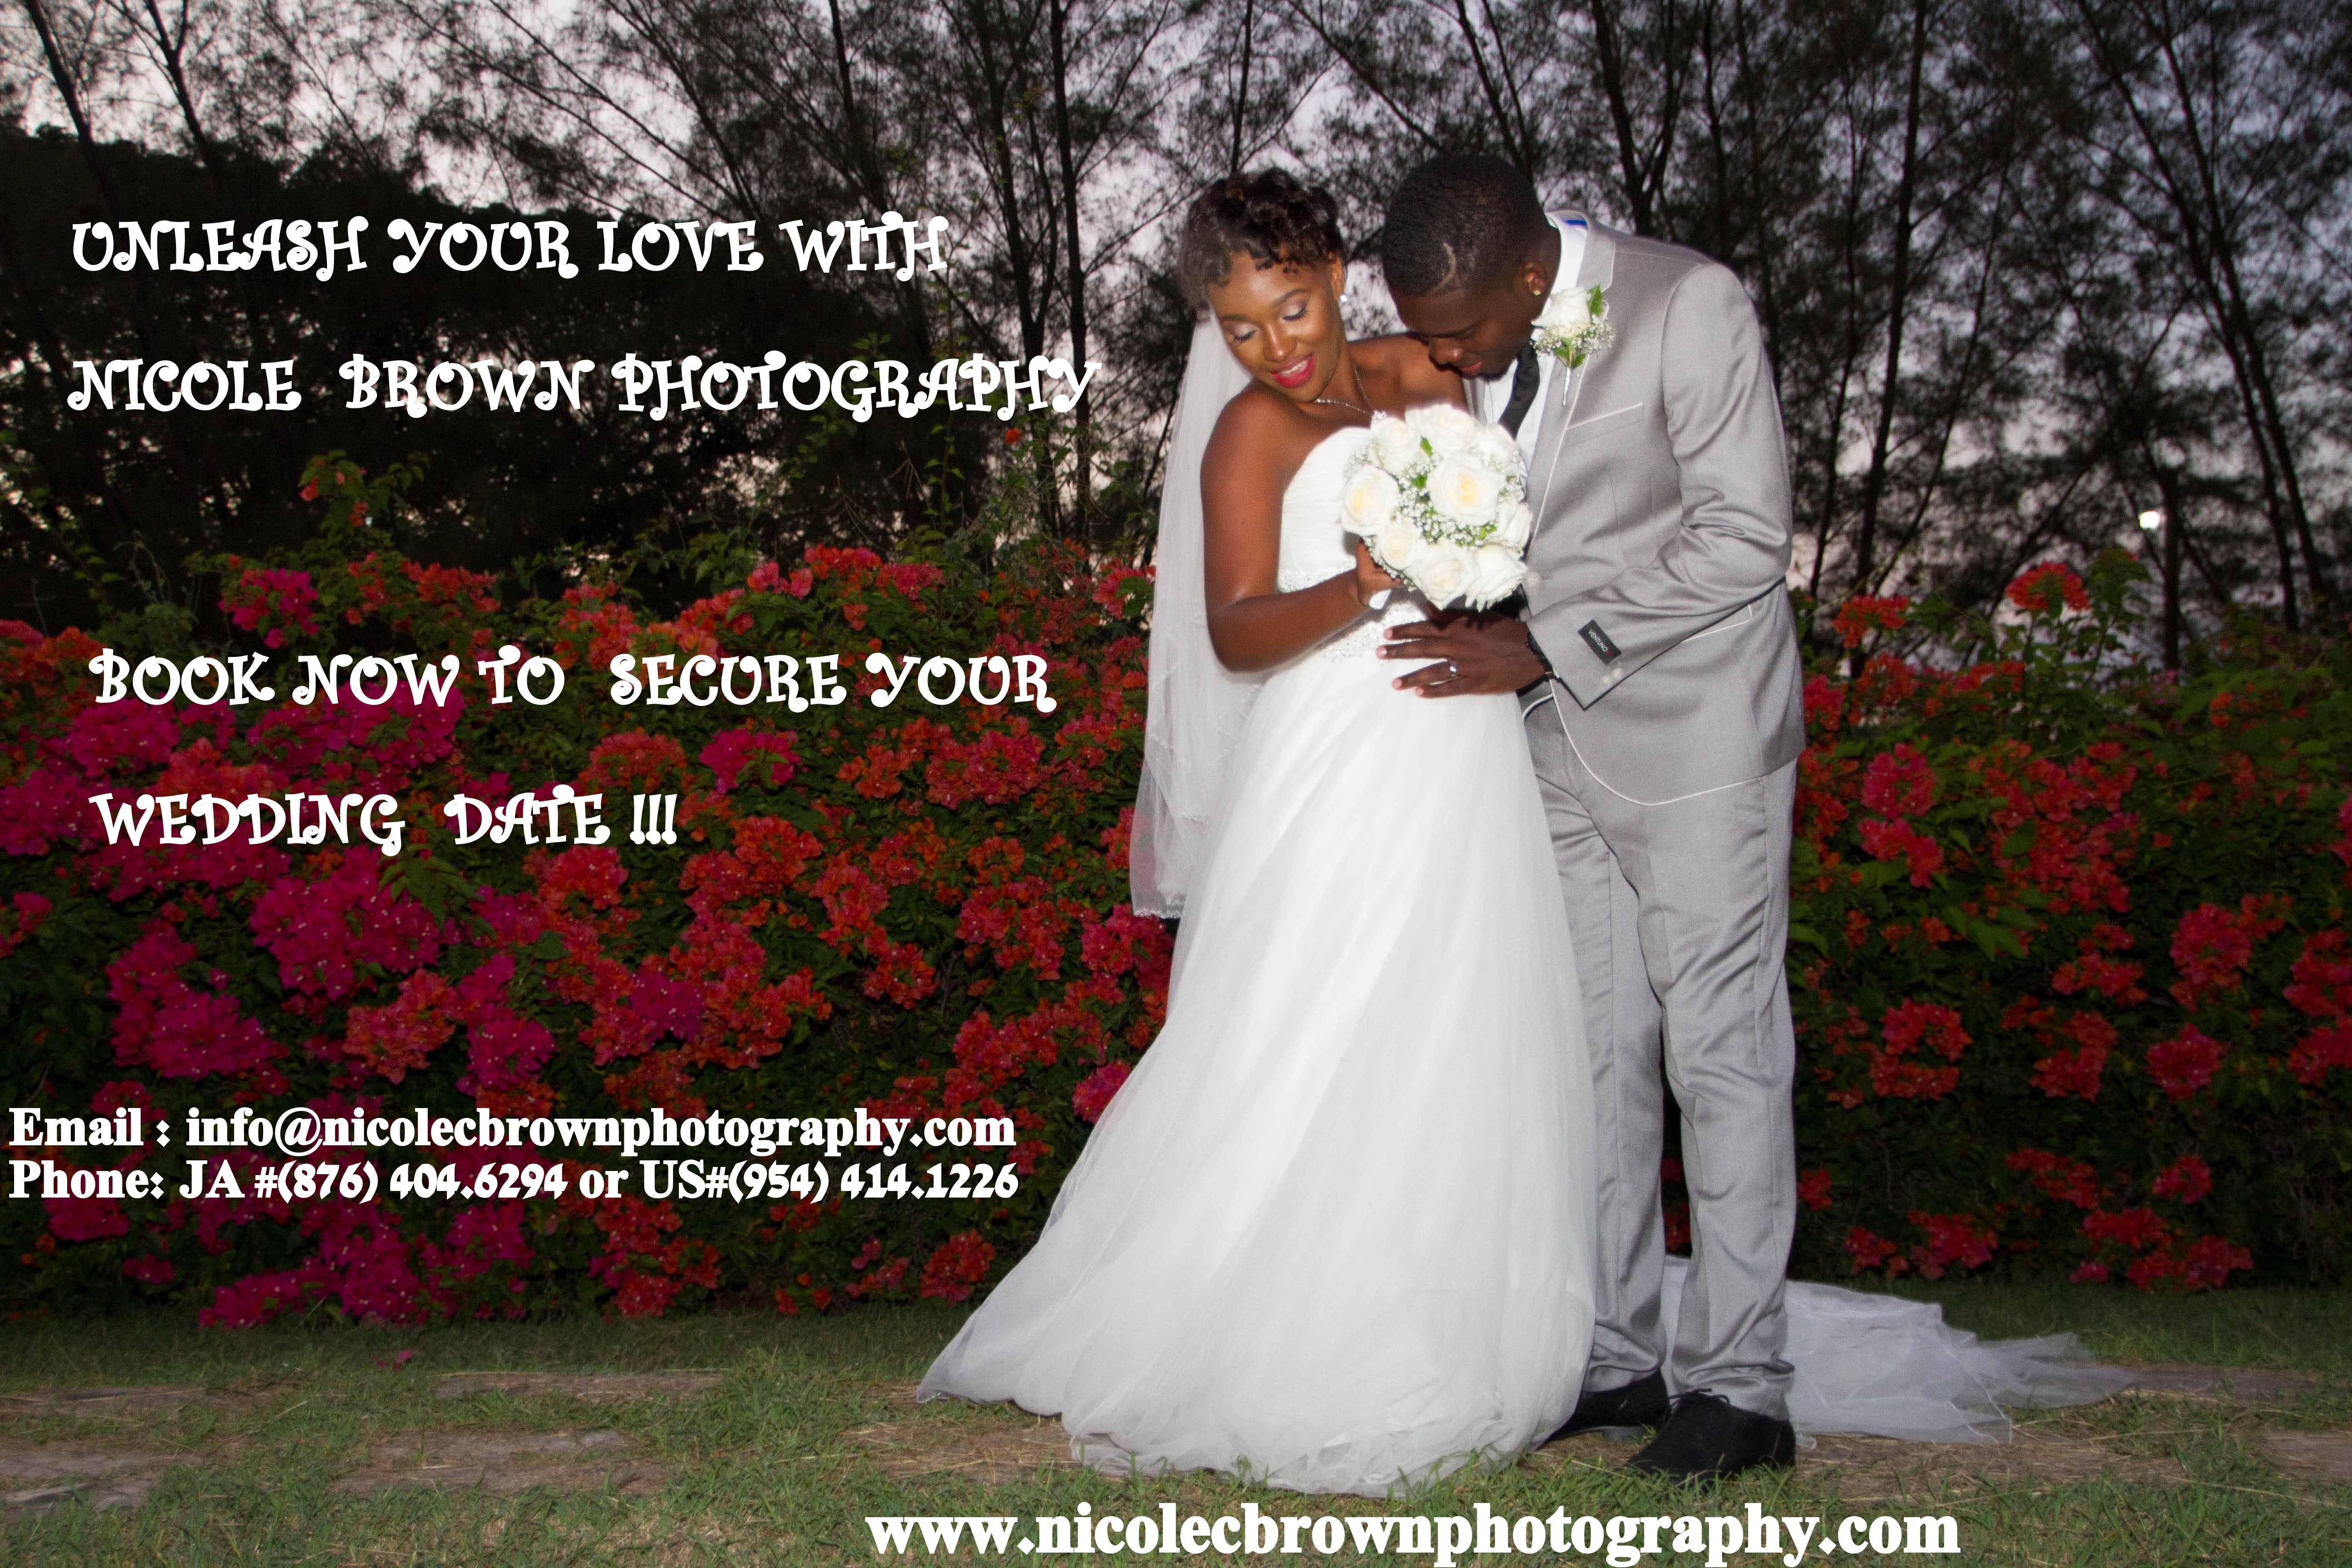 Book Your Upcoming Wedding With Nicole Brown Photography